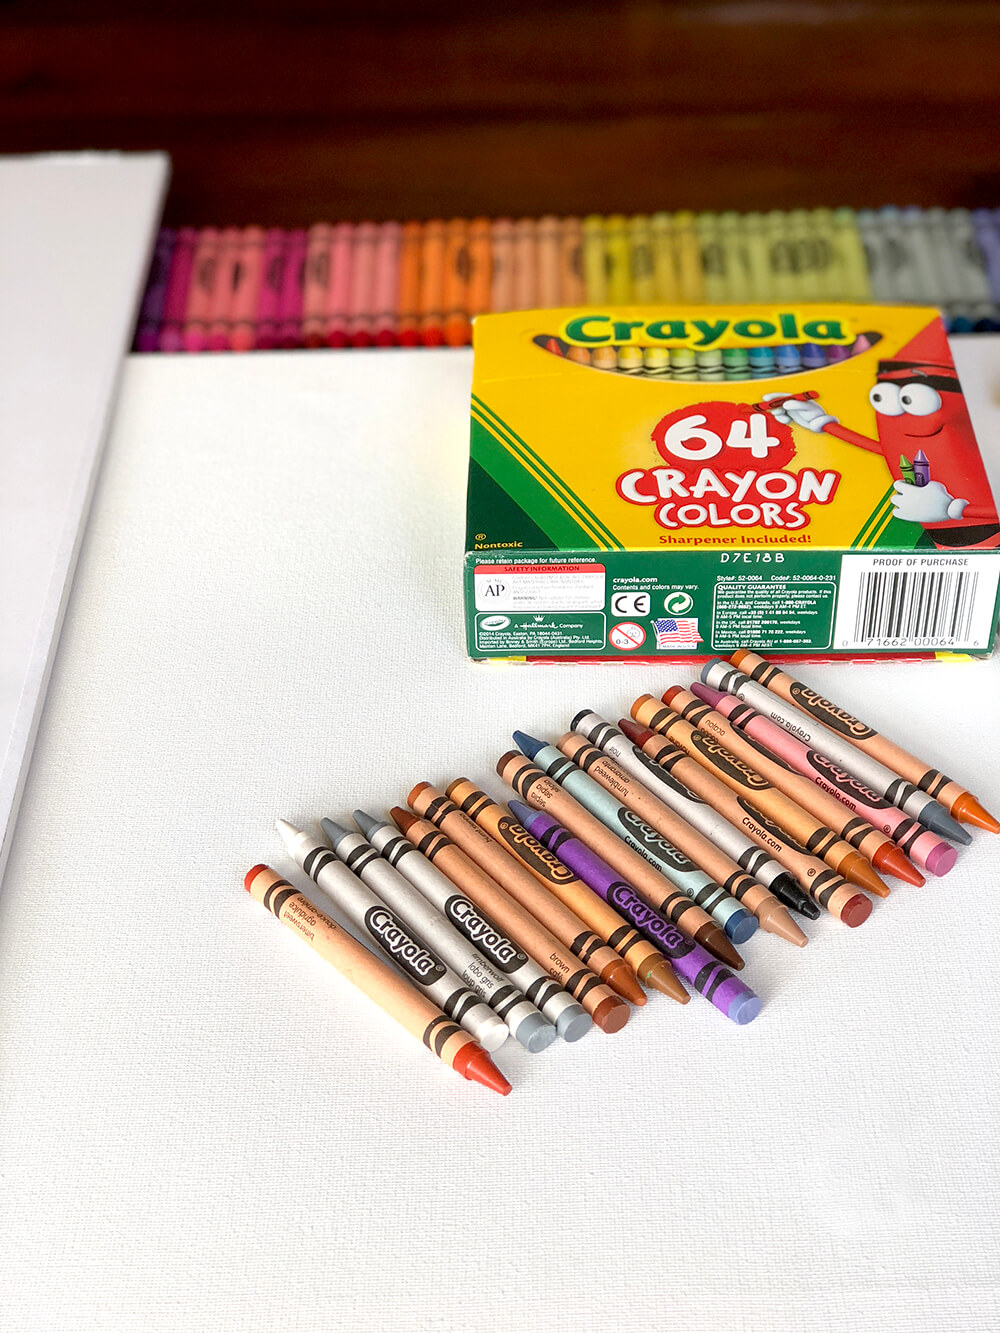 Left over crayons from Melted crayon art rainbow